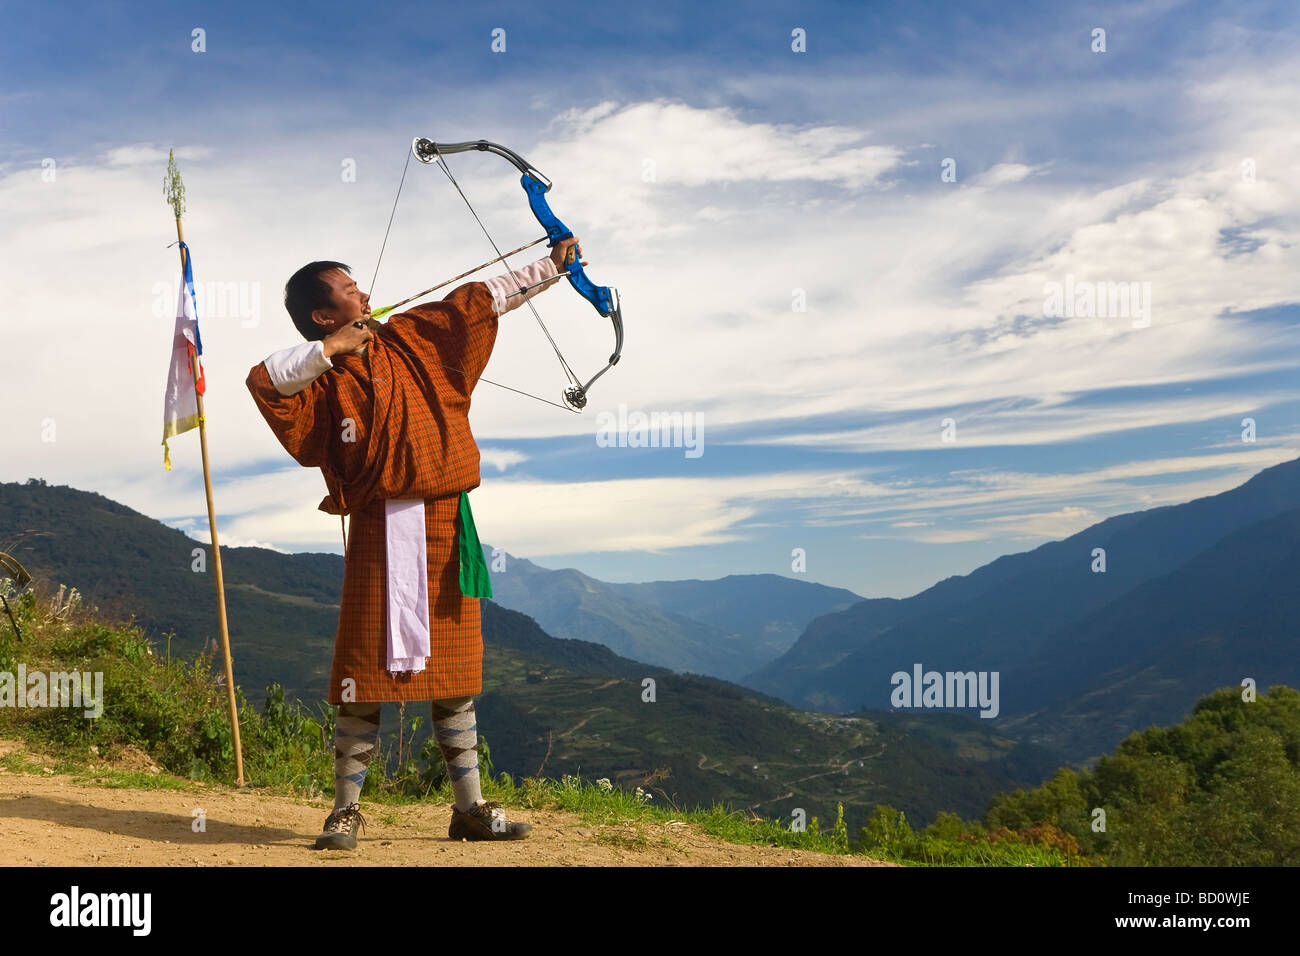 Archery competition Bumthang Bhutan - Stock Image